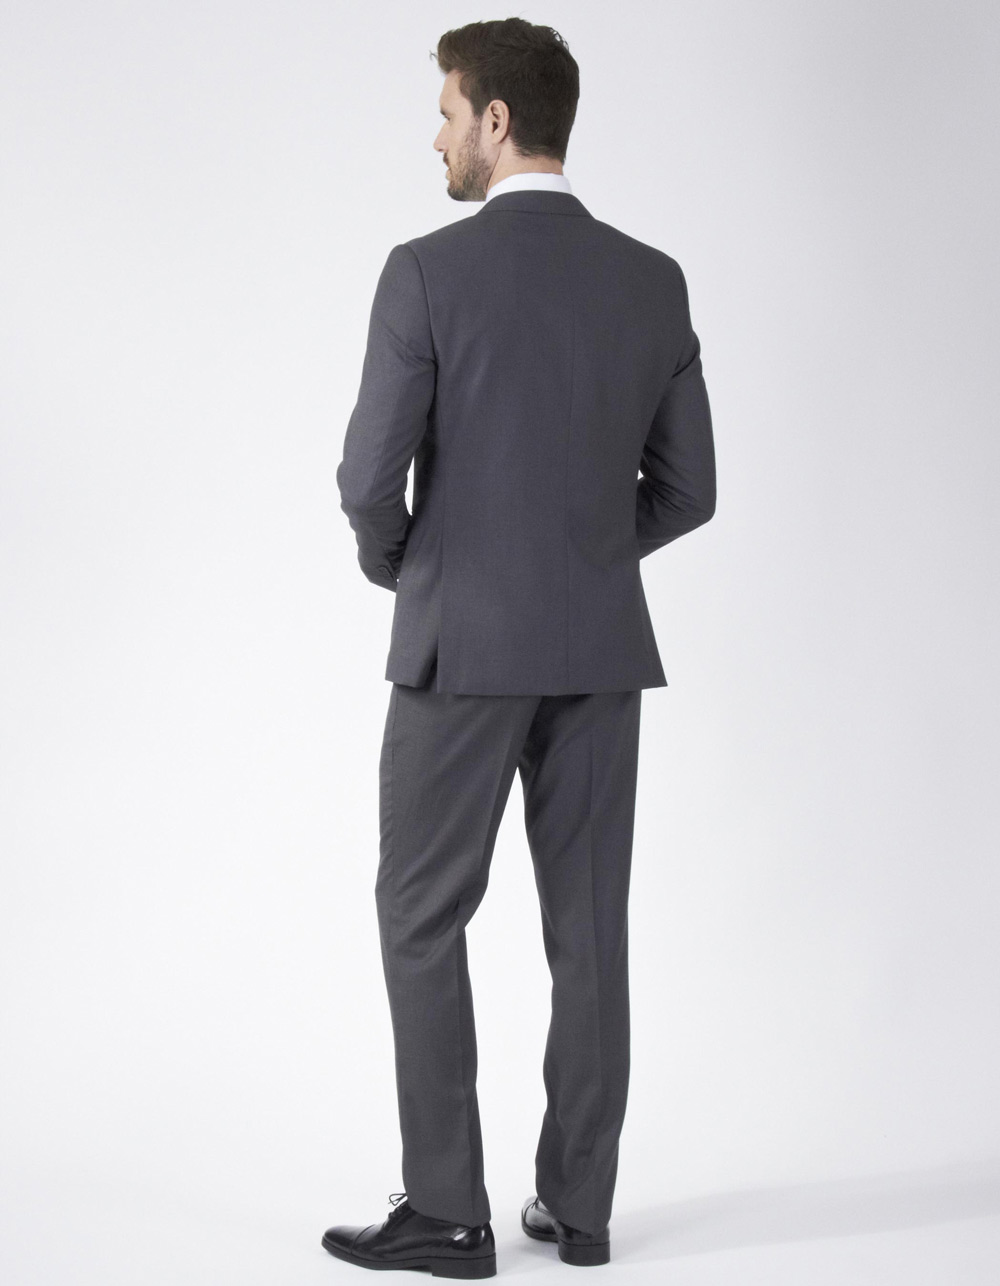 Charcoal grey plain suit - Backside